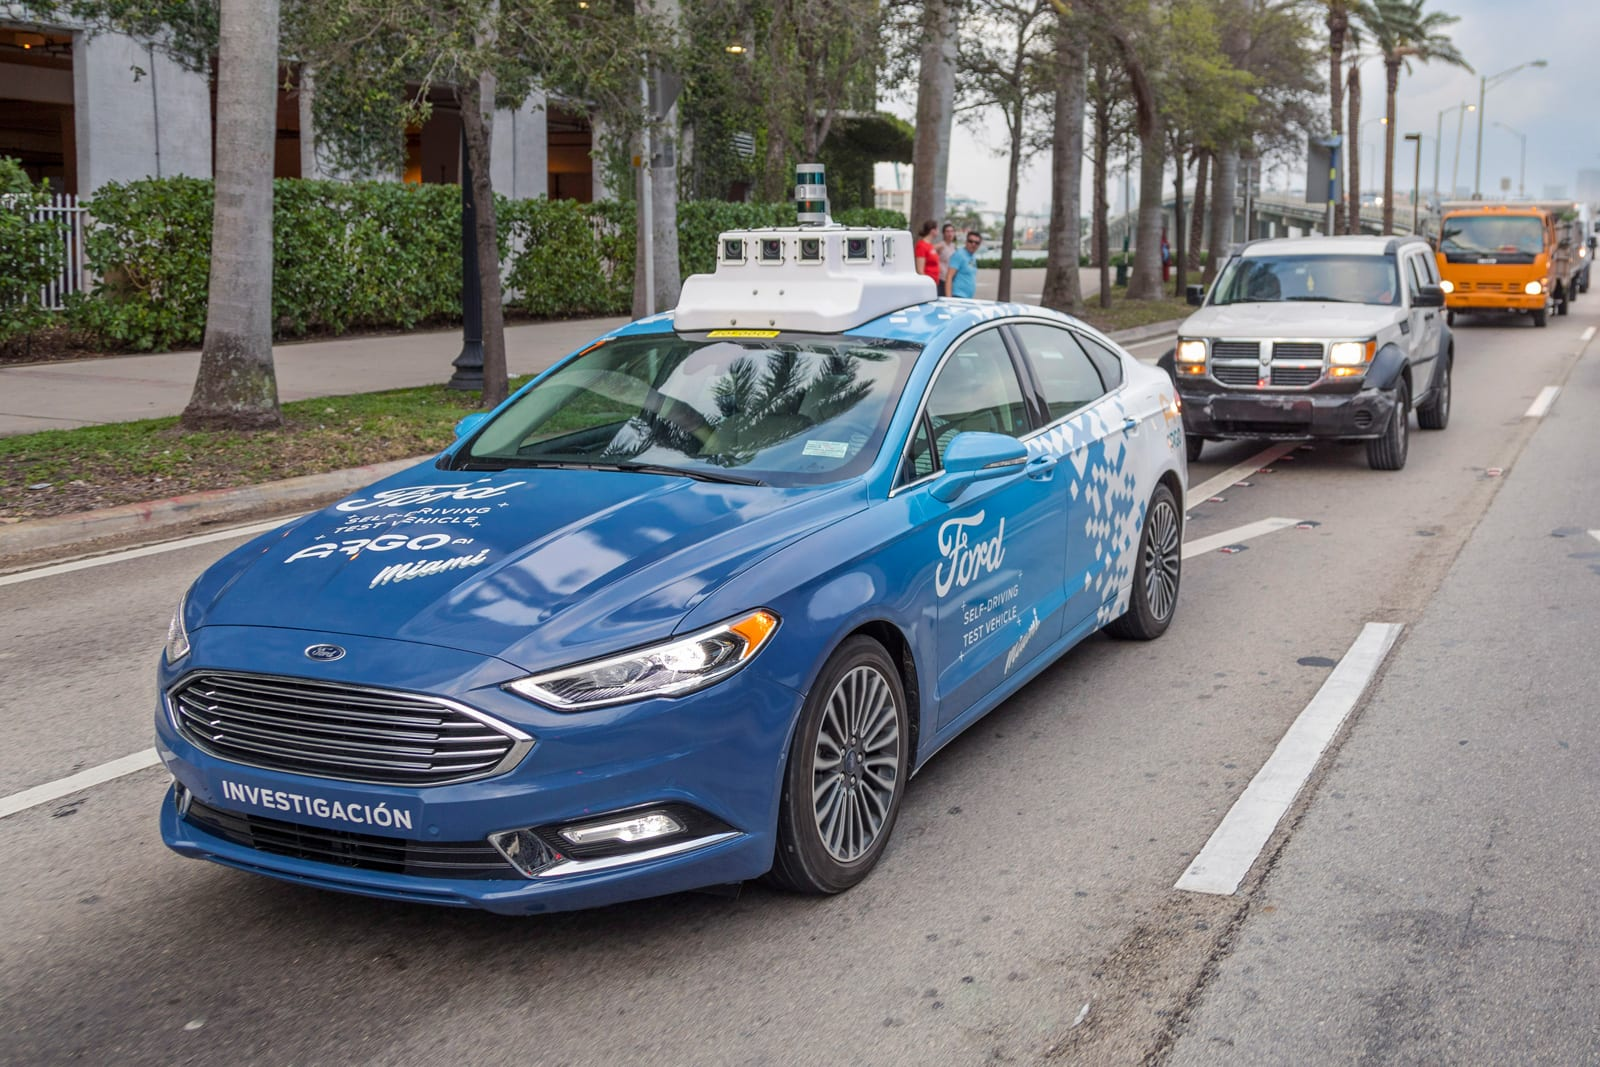 Ford's self-driving car network will launch 'at scale' in 2021